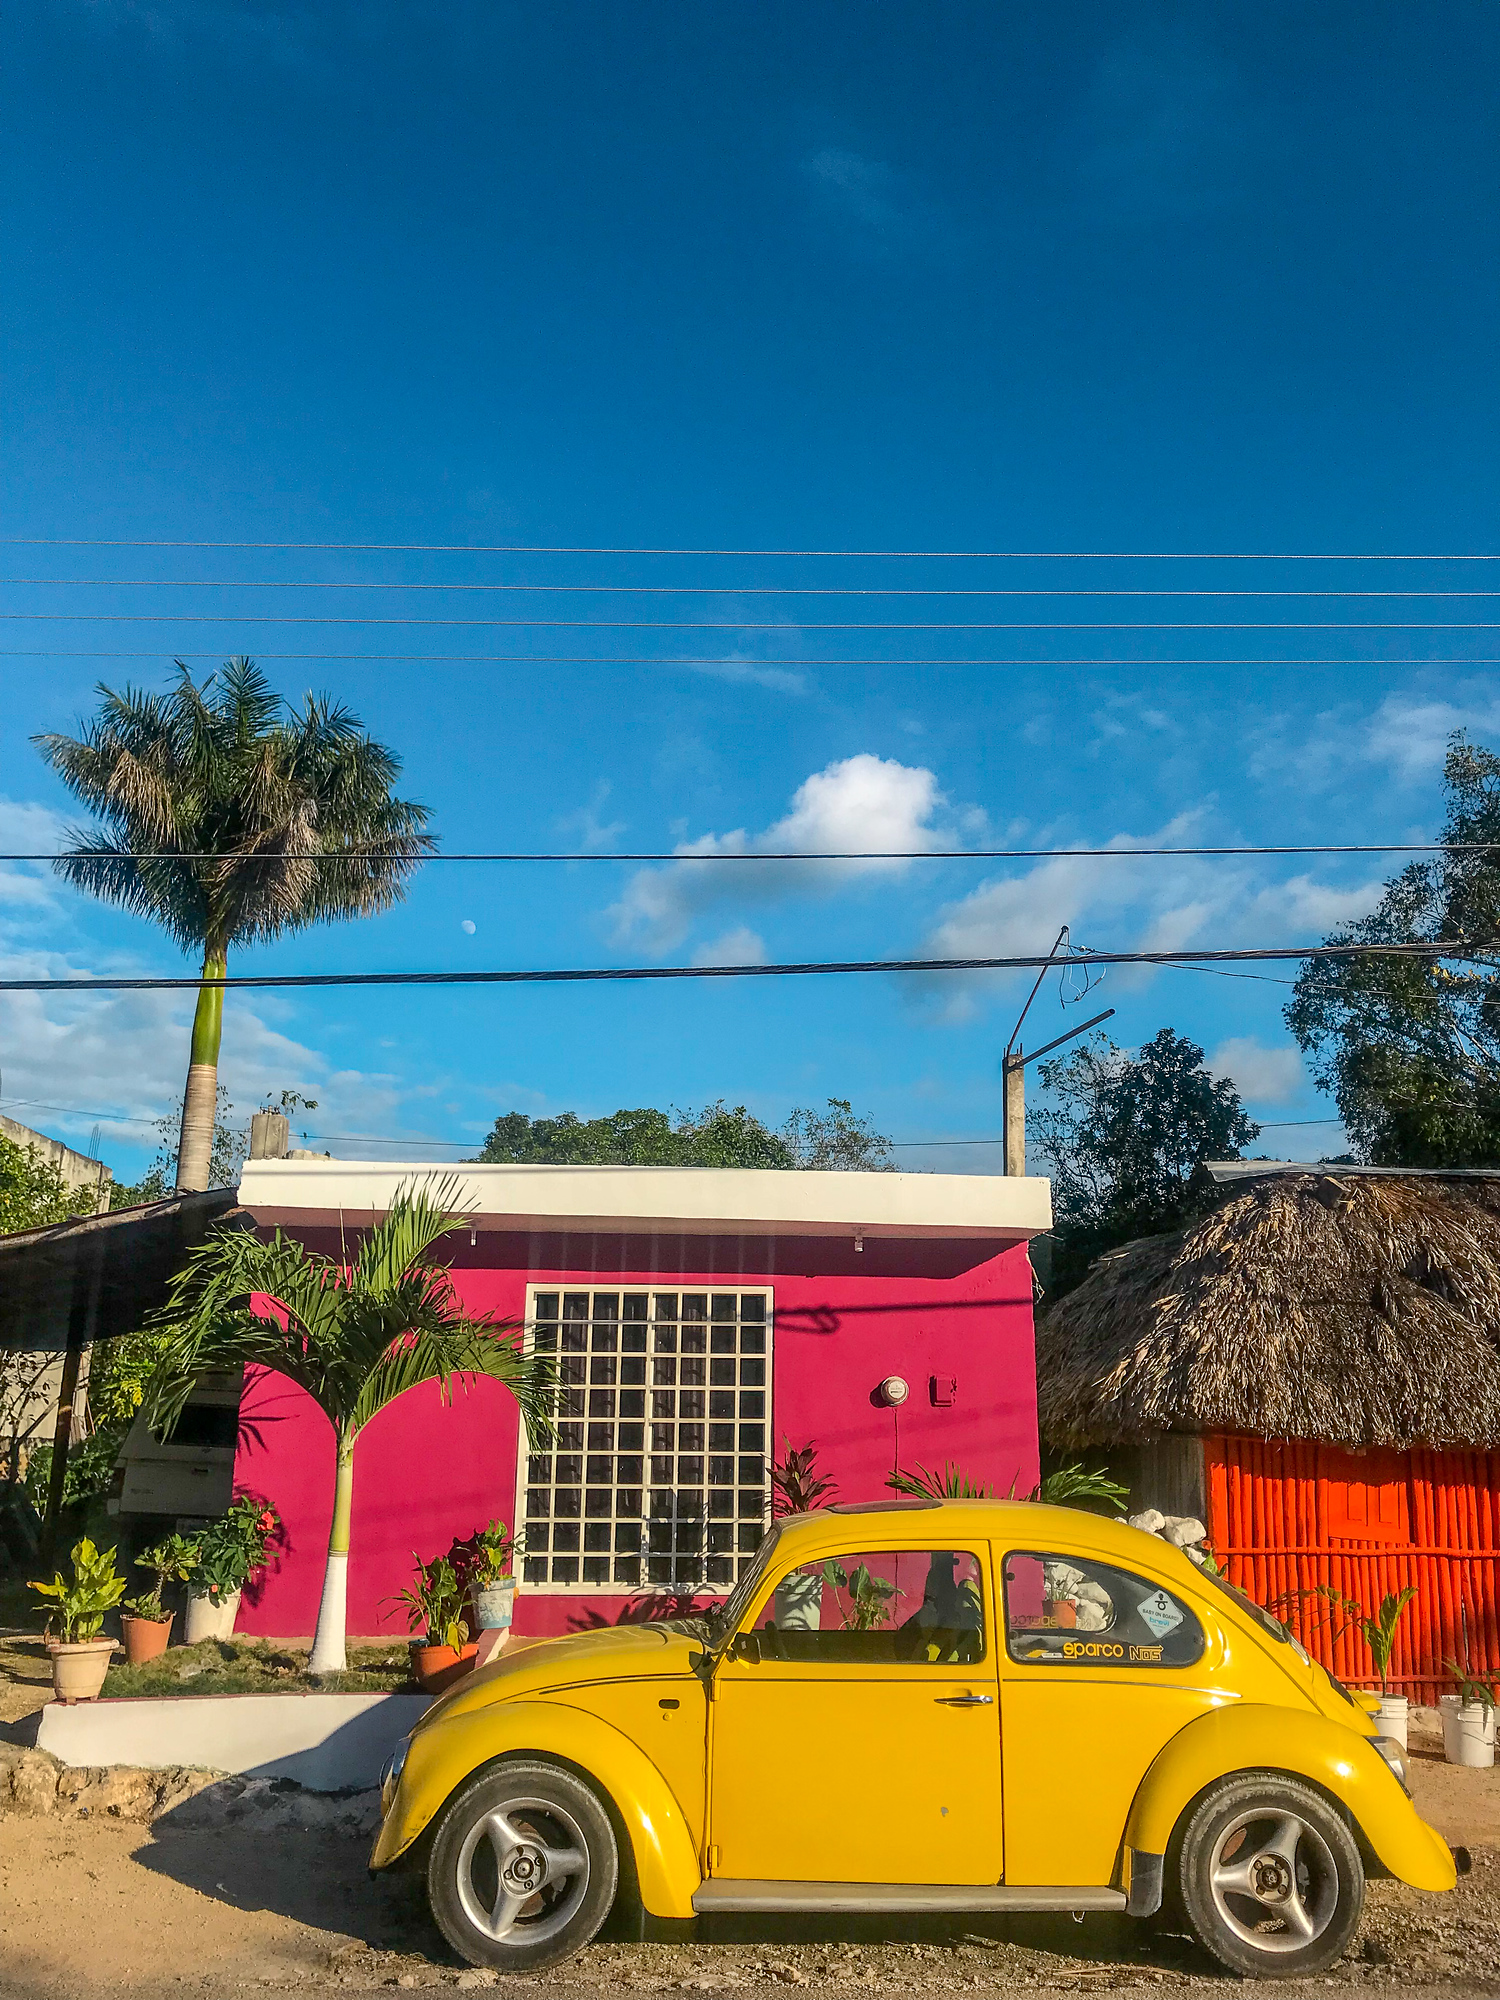 Only an hour from Tulum, Felipe Carrillo Puerto is for travelers who want an authentic experience in the Riviera Maya.